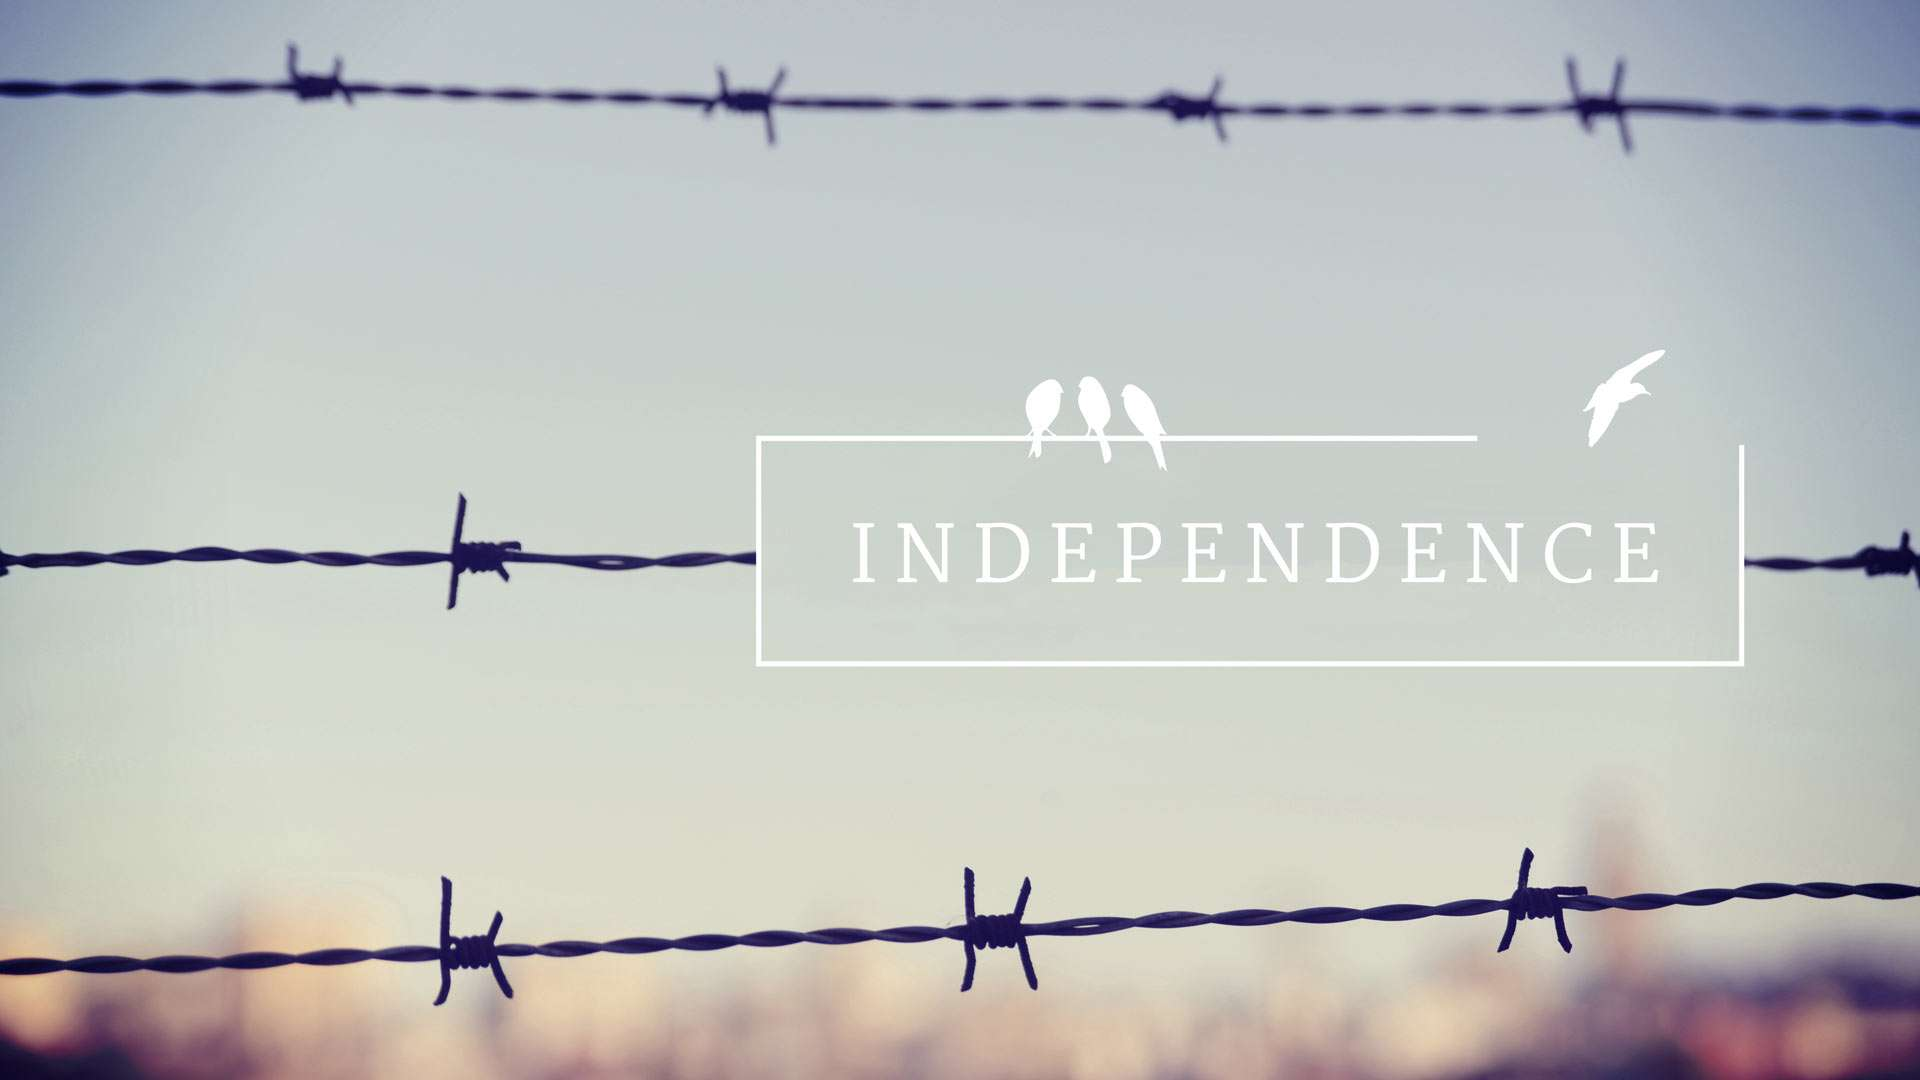 The Key for Independence – Going Beyond Boundaries